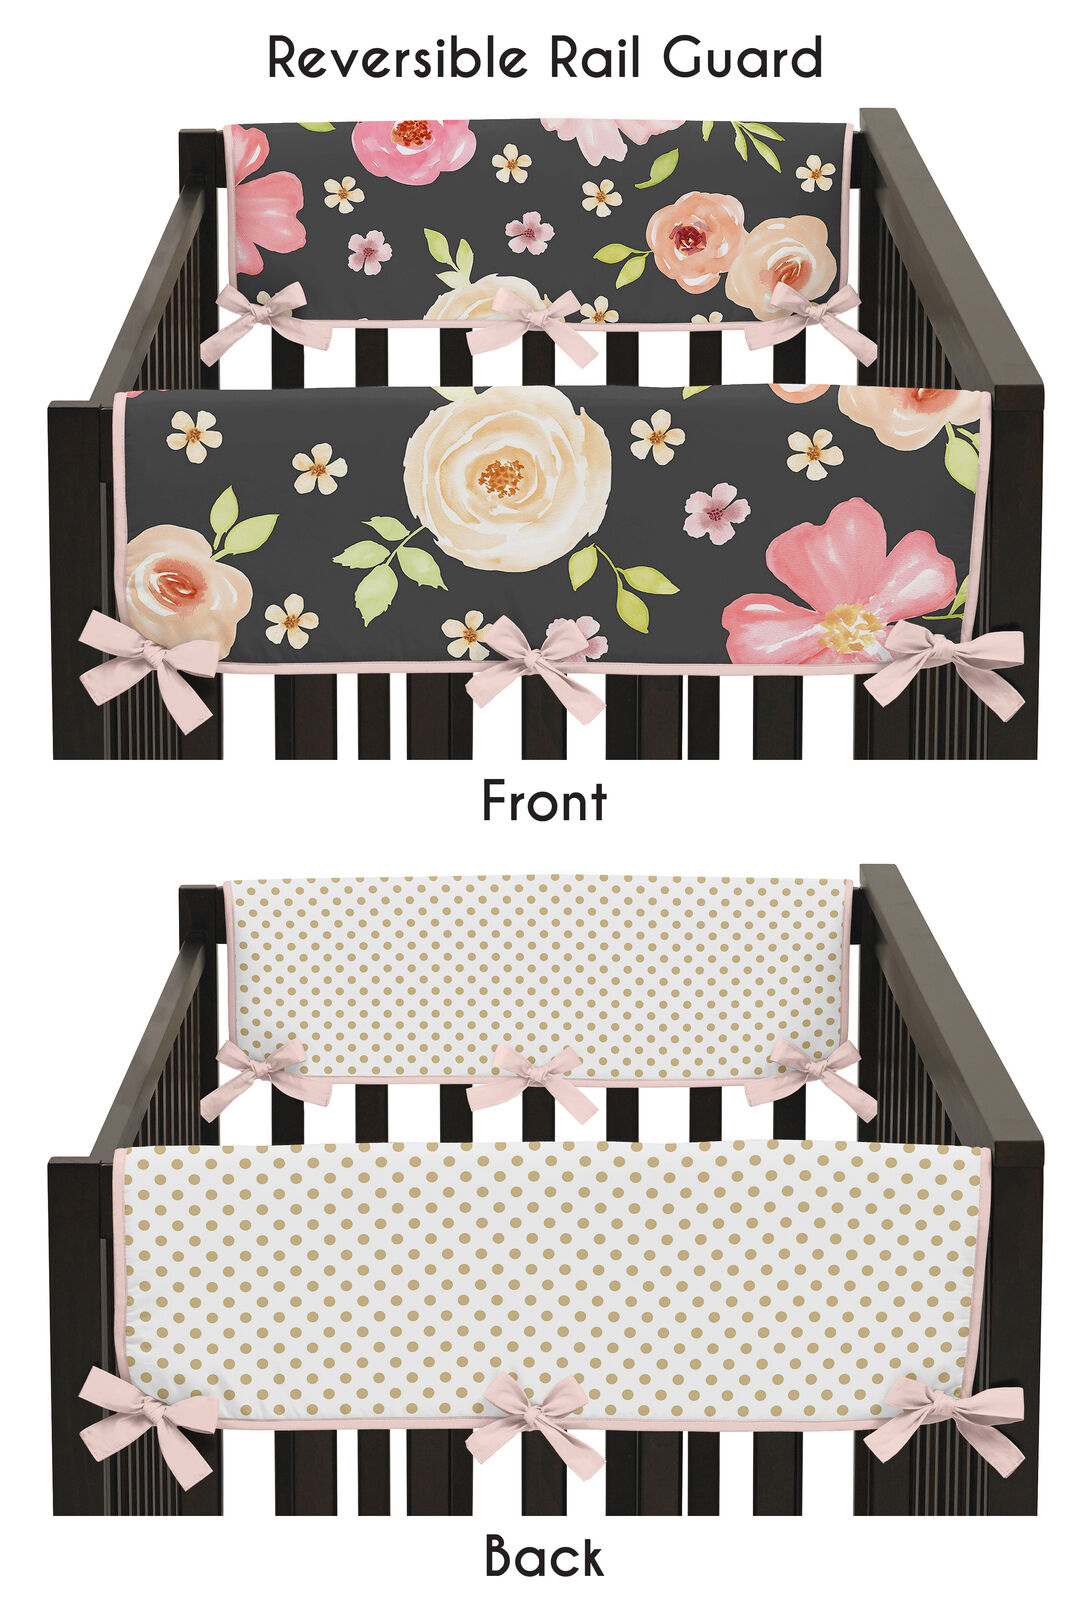 Blush Sweet Jojo Designs Navy Blue and Pink Watercolor Floral Girl Side Crib Rail Guards Baby Teething Cover Protector Wrap Set of 2 Green and White Shabby Chic Rose Flower Polka Dot